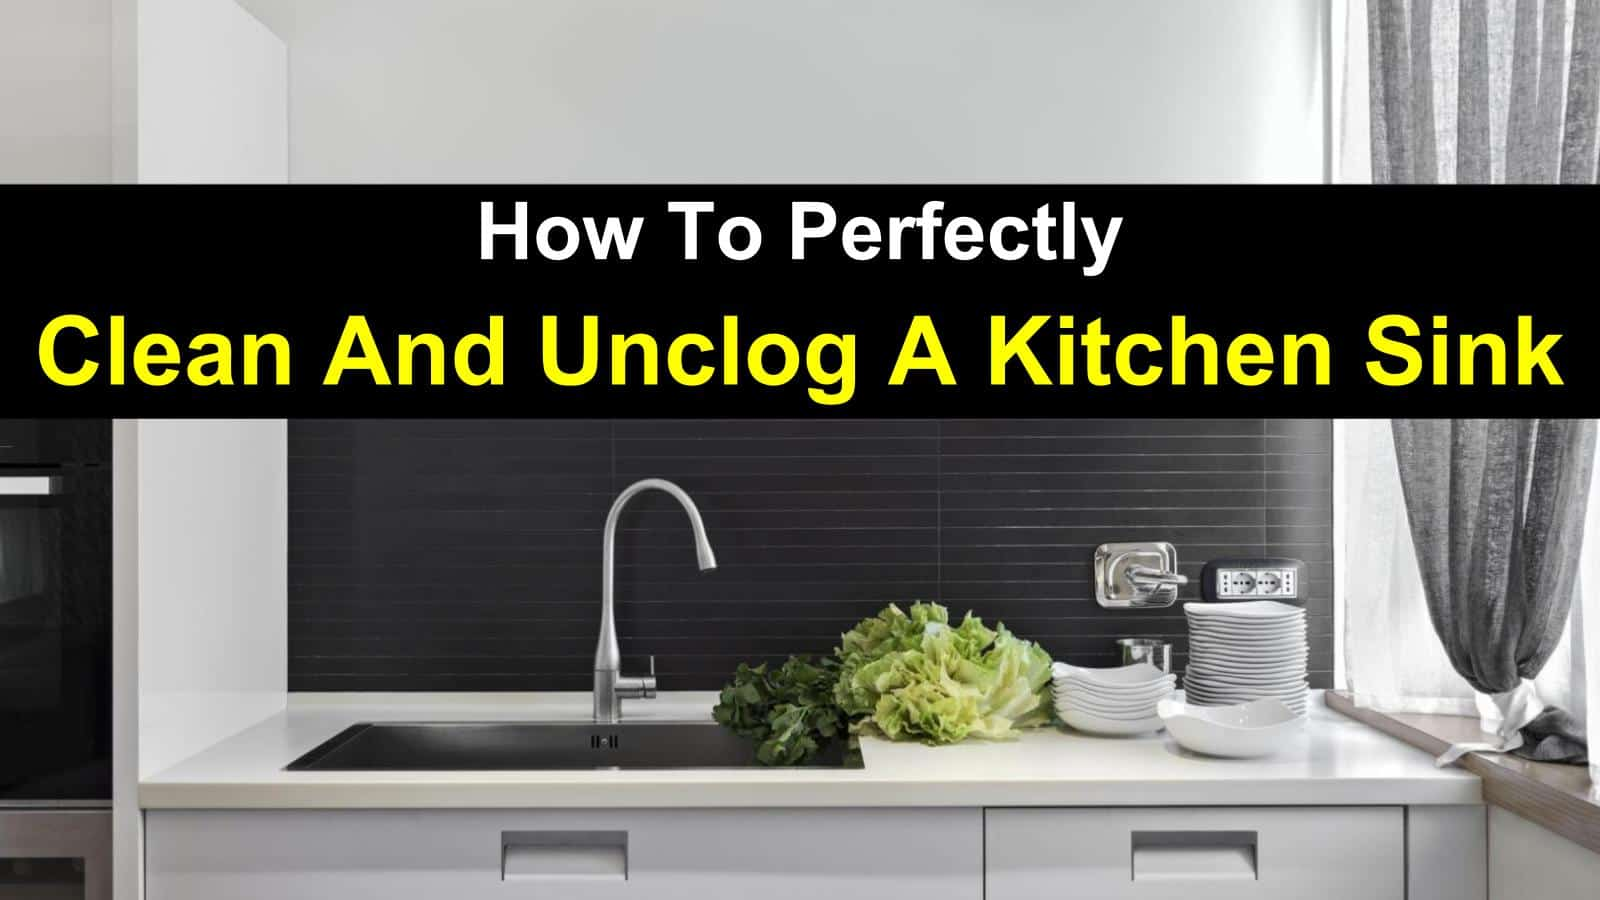 How To Perfectly Clean And Unclog A Kitchen Sink